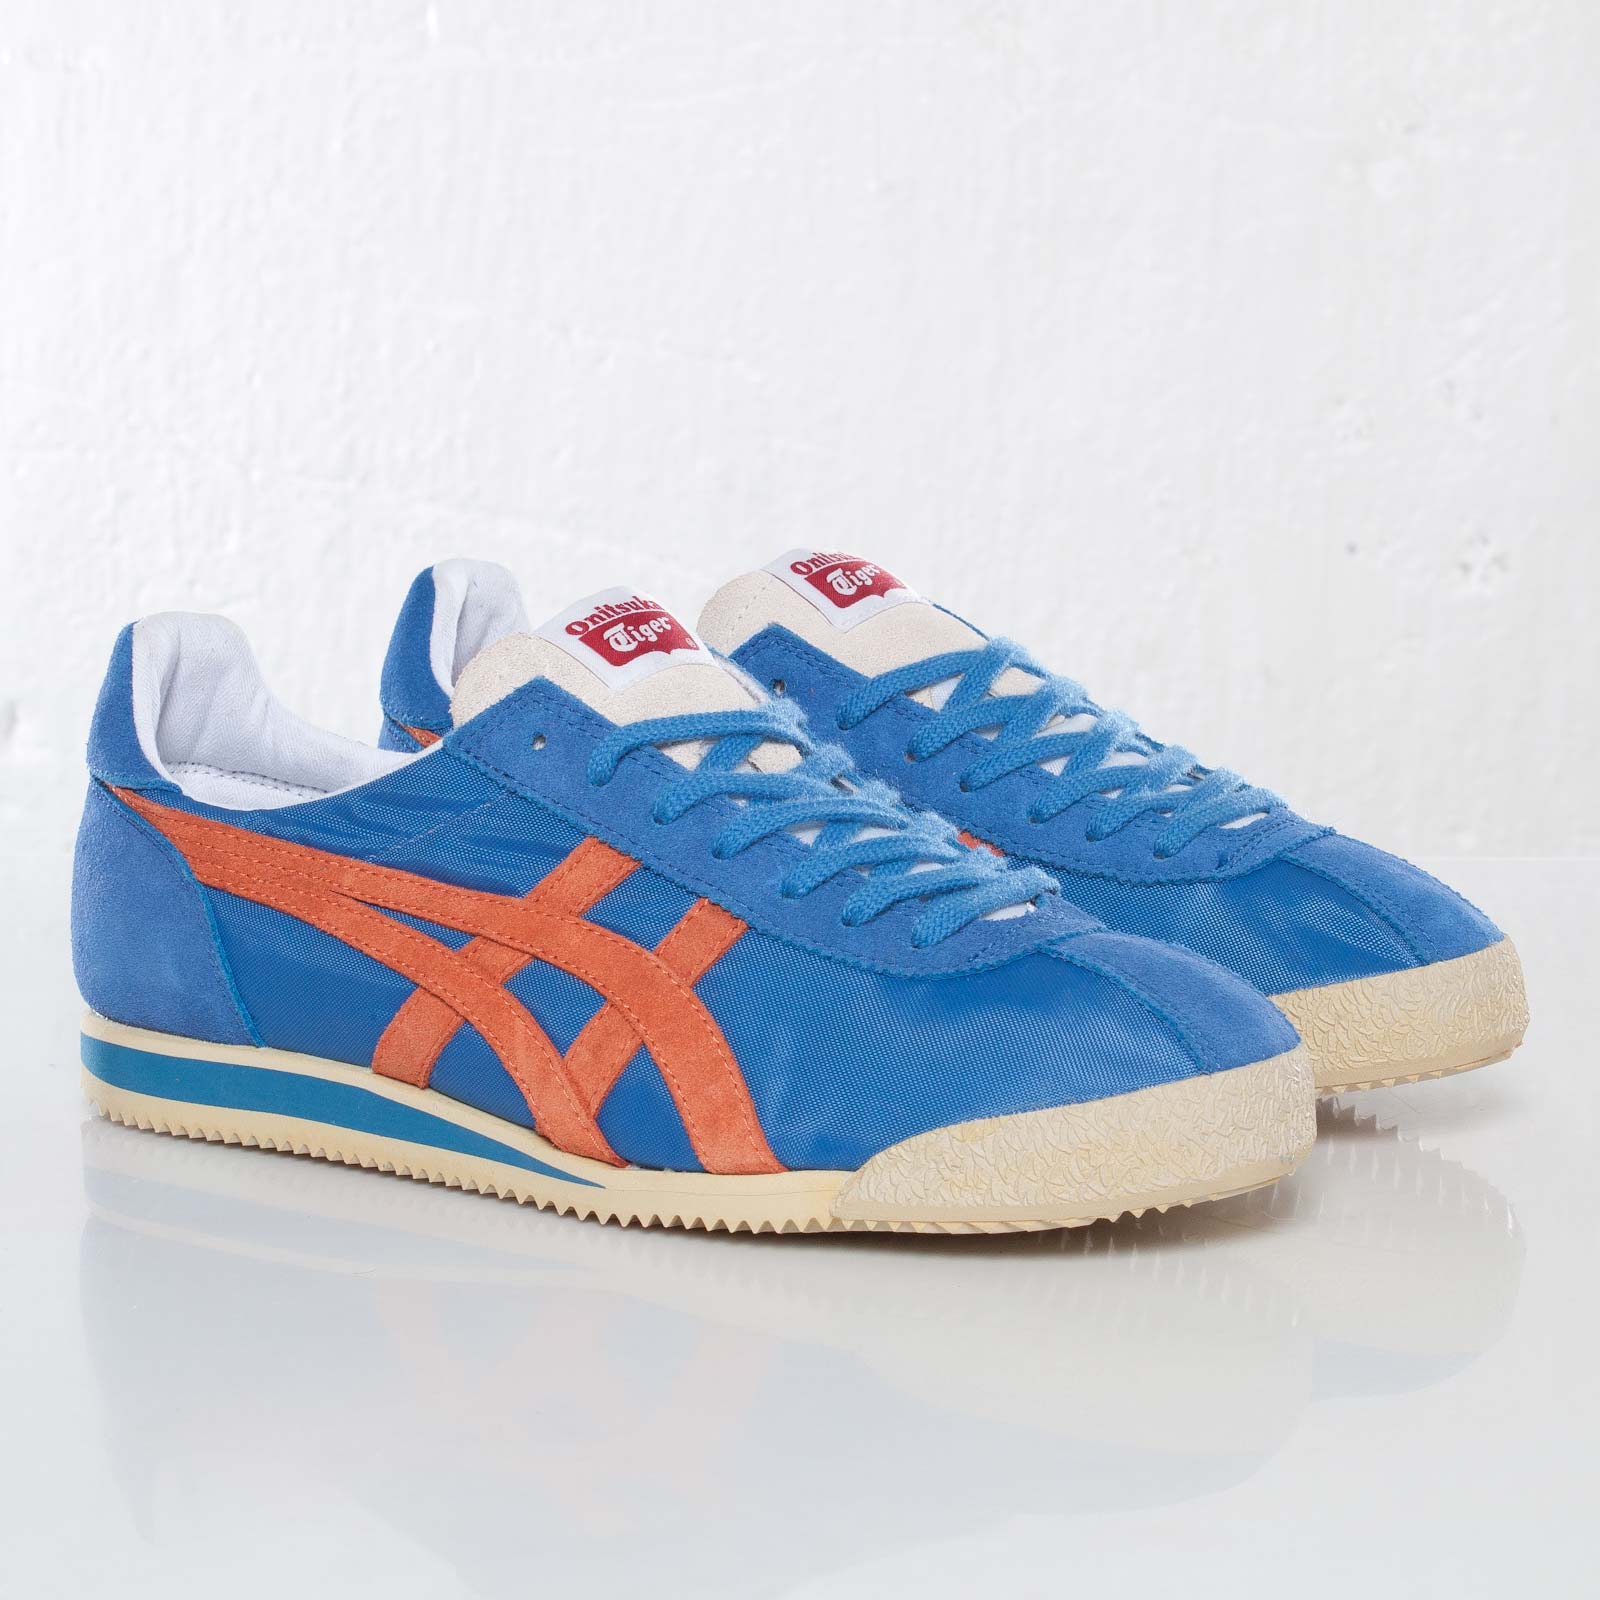 super popular e794b f3449 Onitsuka Tiger Tiger Corsair Vin - D321n-4209 ...